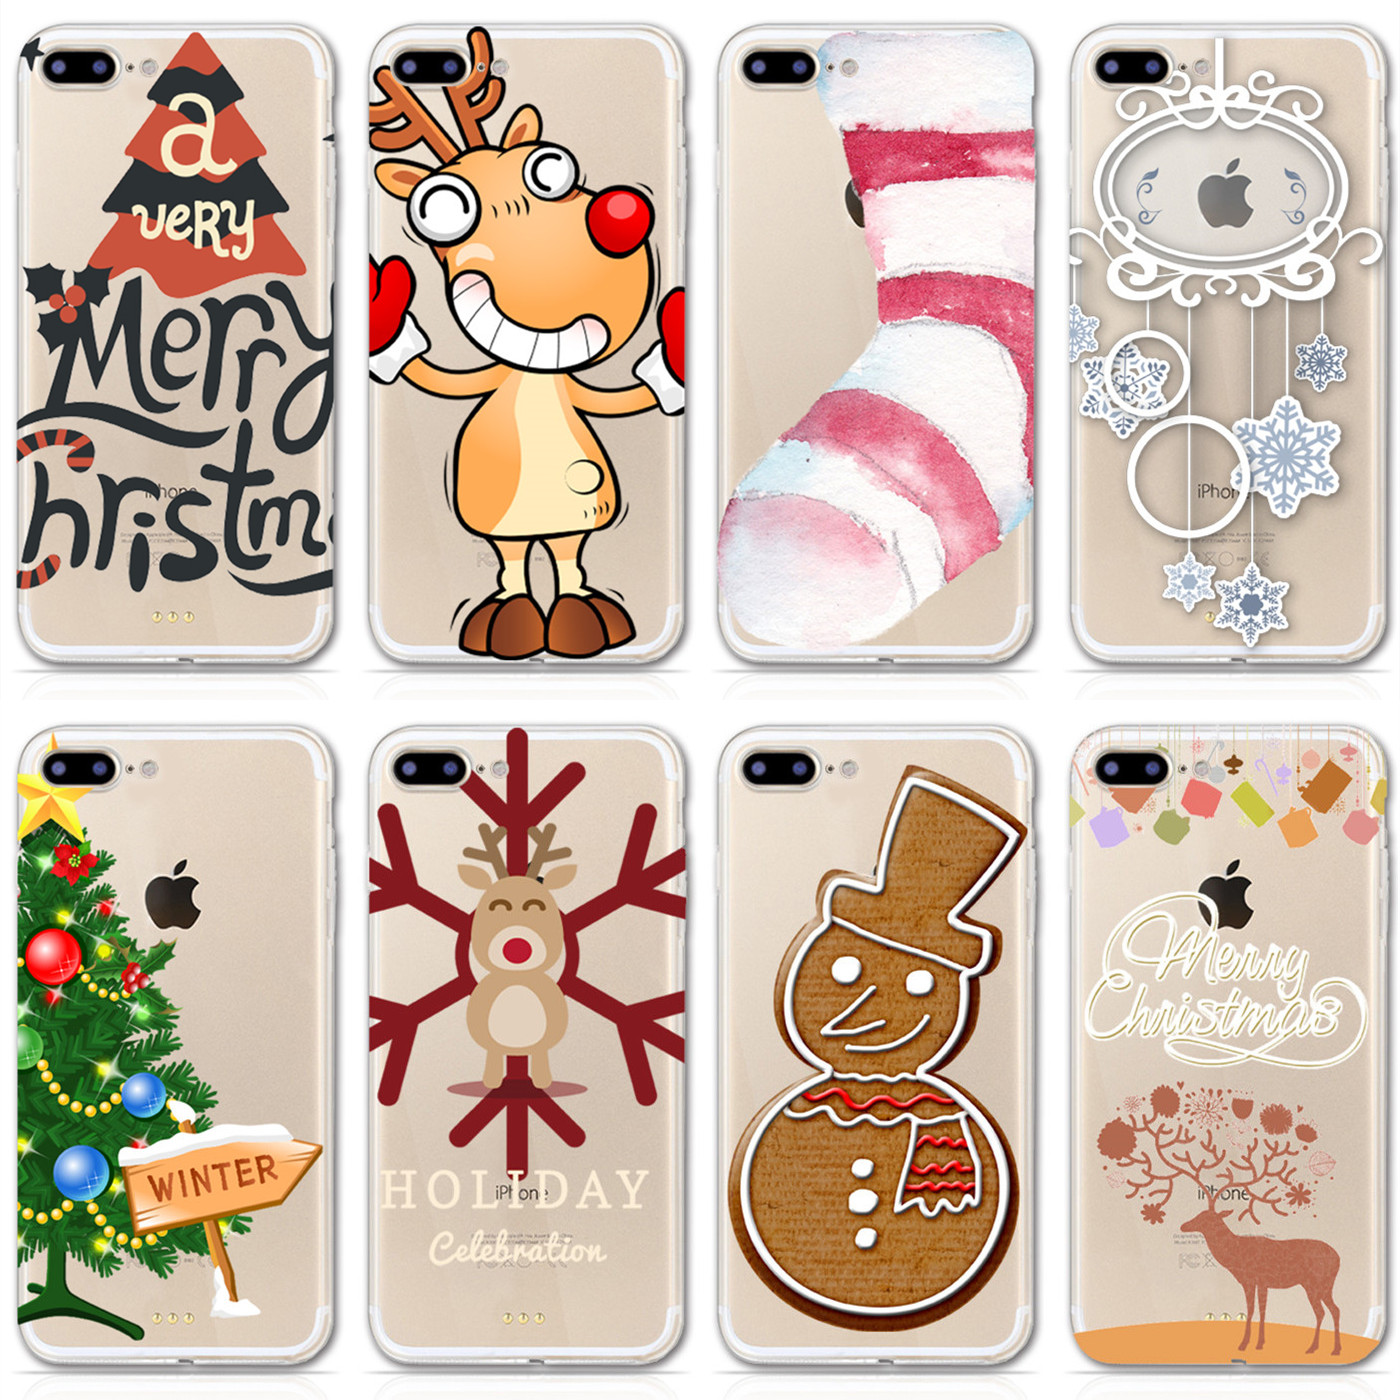 Clear Silicone Soft Phone Case For iPhone 6 6s 5 5s Plus Christmas Tree Elk Snowman Pattern Cape Back Cover for iPhone 7 Plus